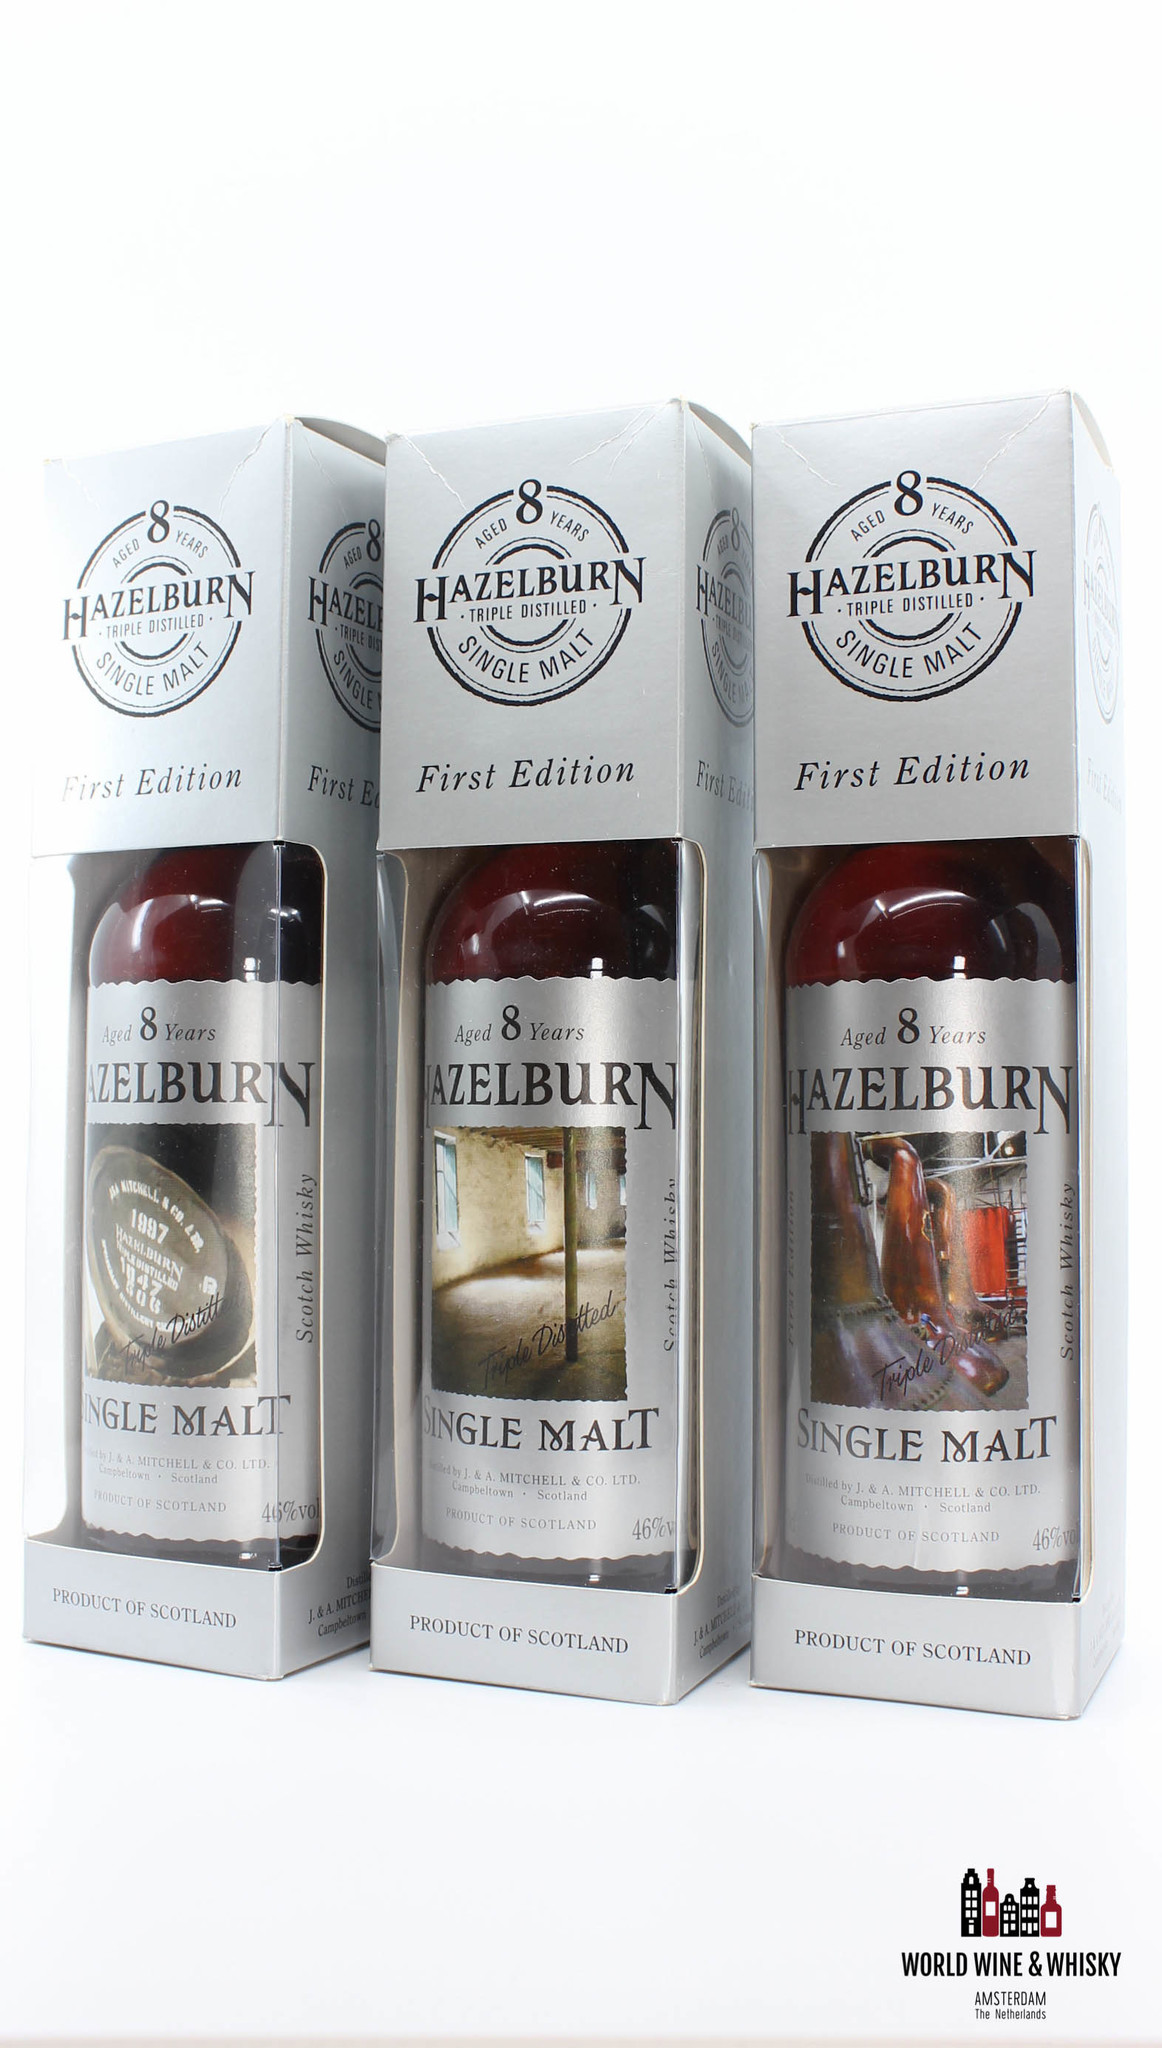 Springbank Hazelburn 8 Years Old 1997 2005 First Edition - Barrel, Malting and Stills set 46% 700 ml (full set)